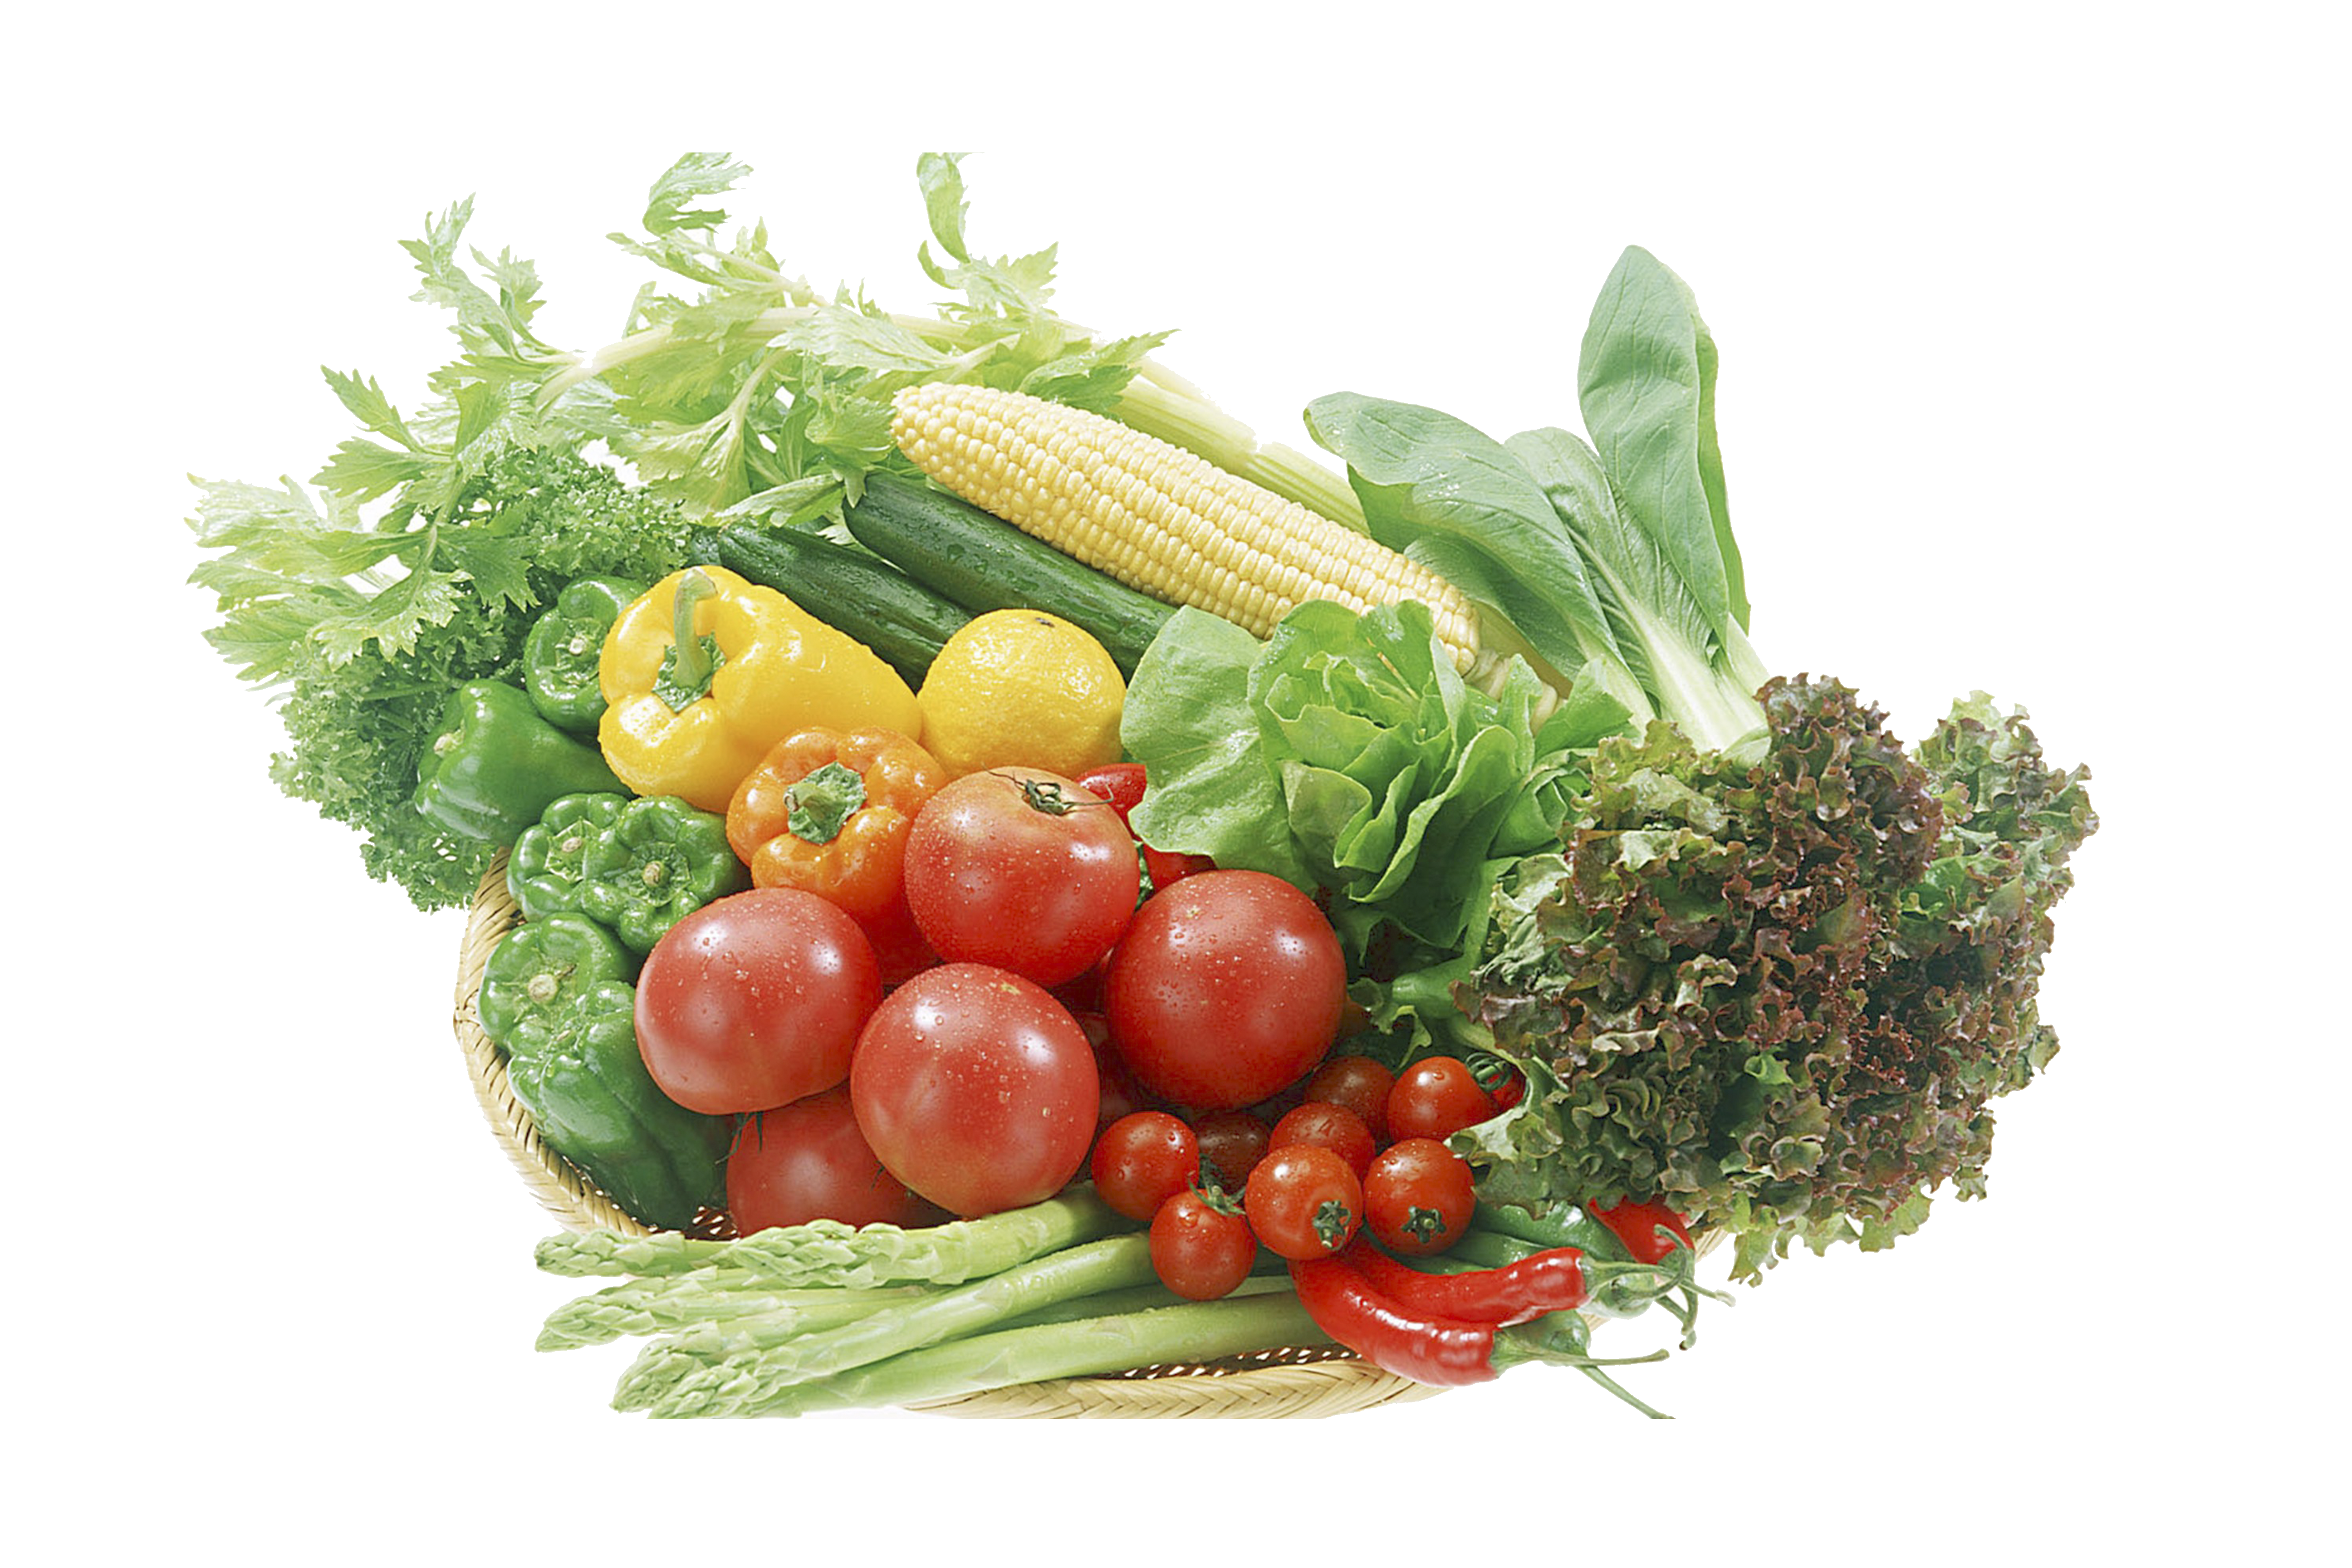 Fruits and veggies png. Junk food vegetable fruit